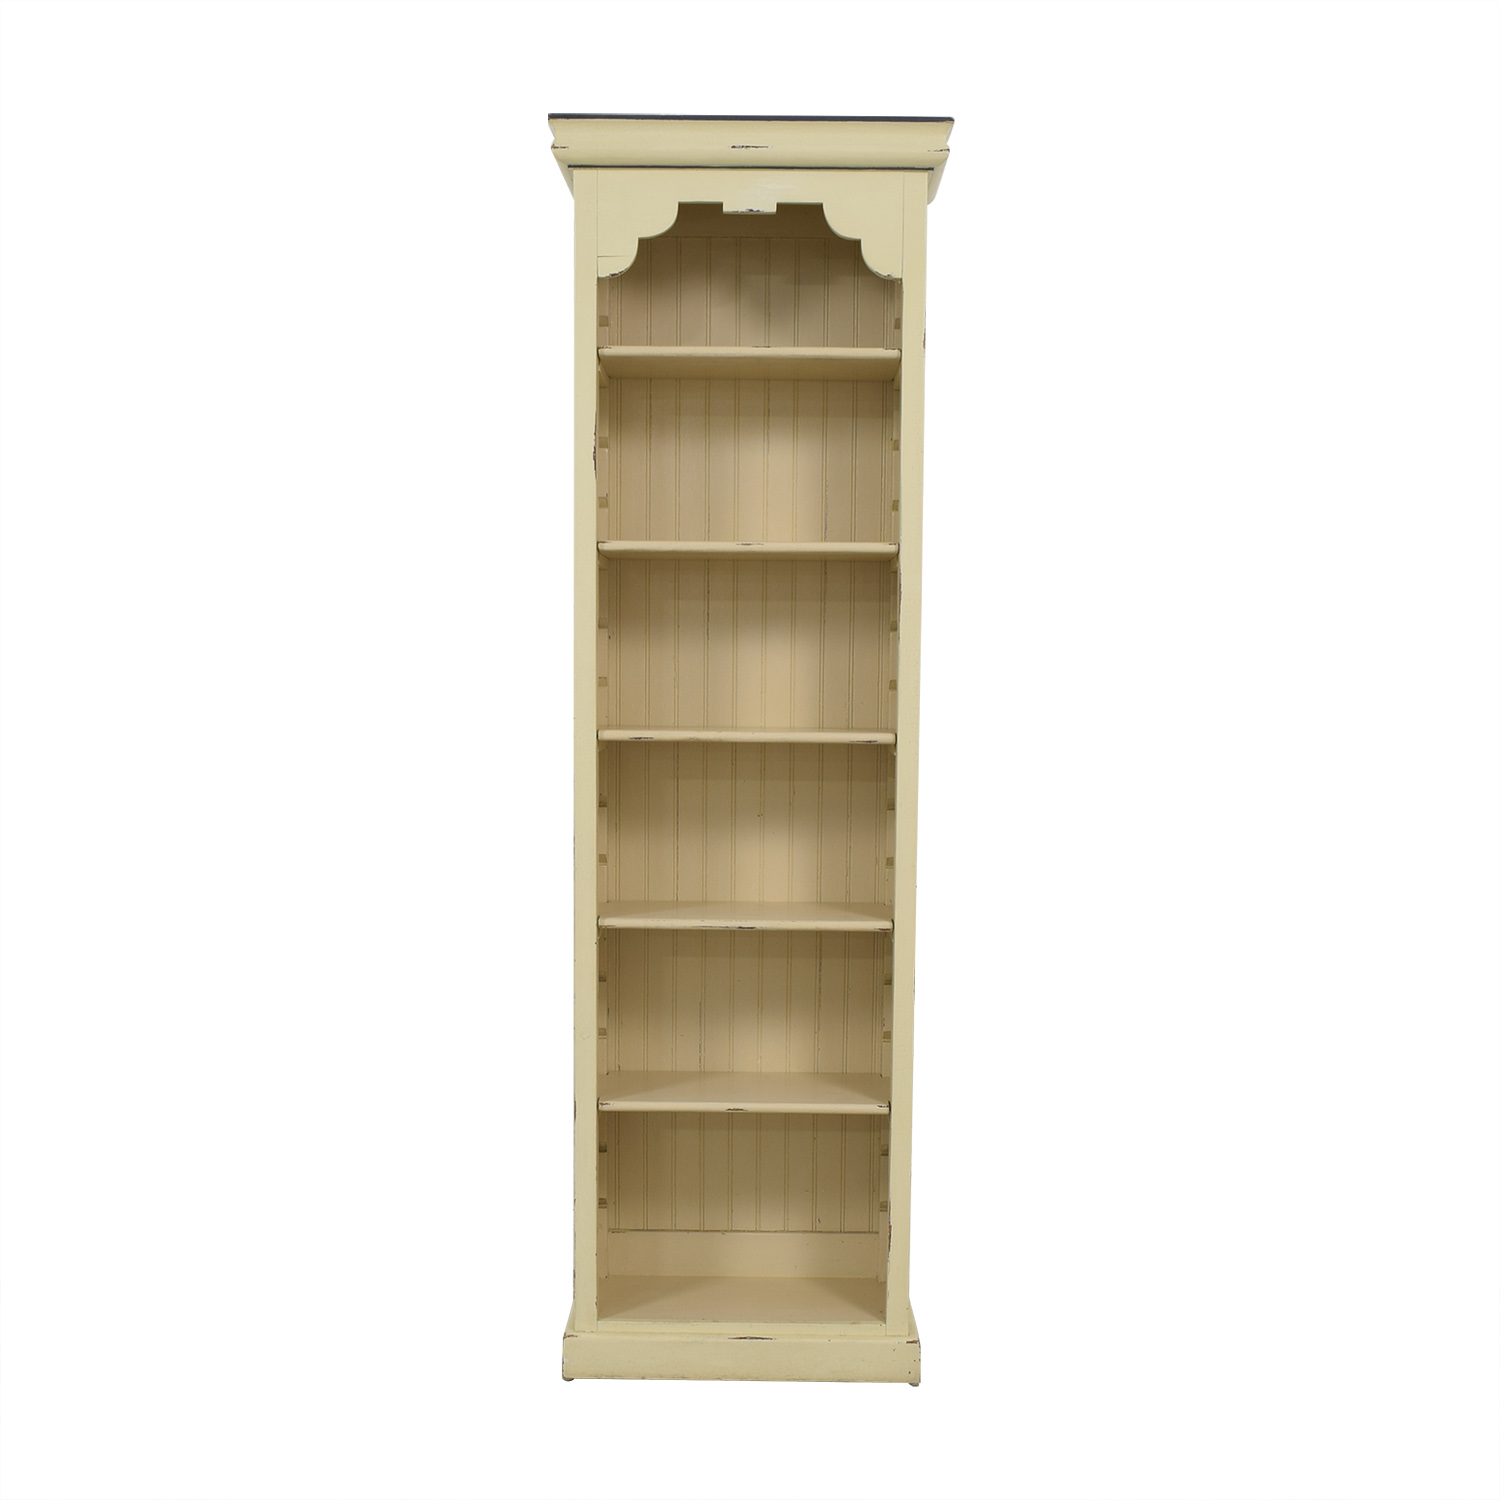 Little Folk Art Little Folk Art Tall Bookshelf on sale